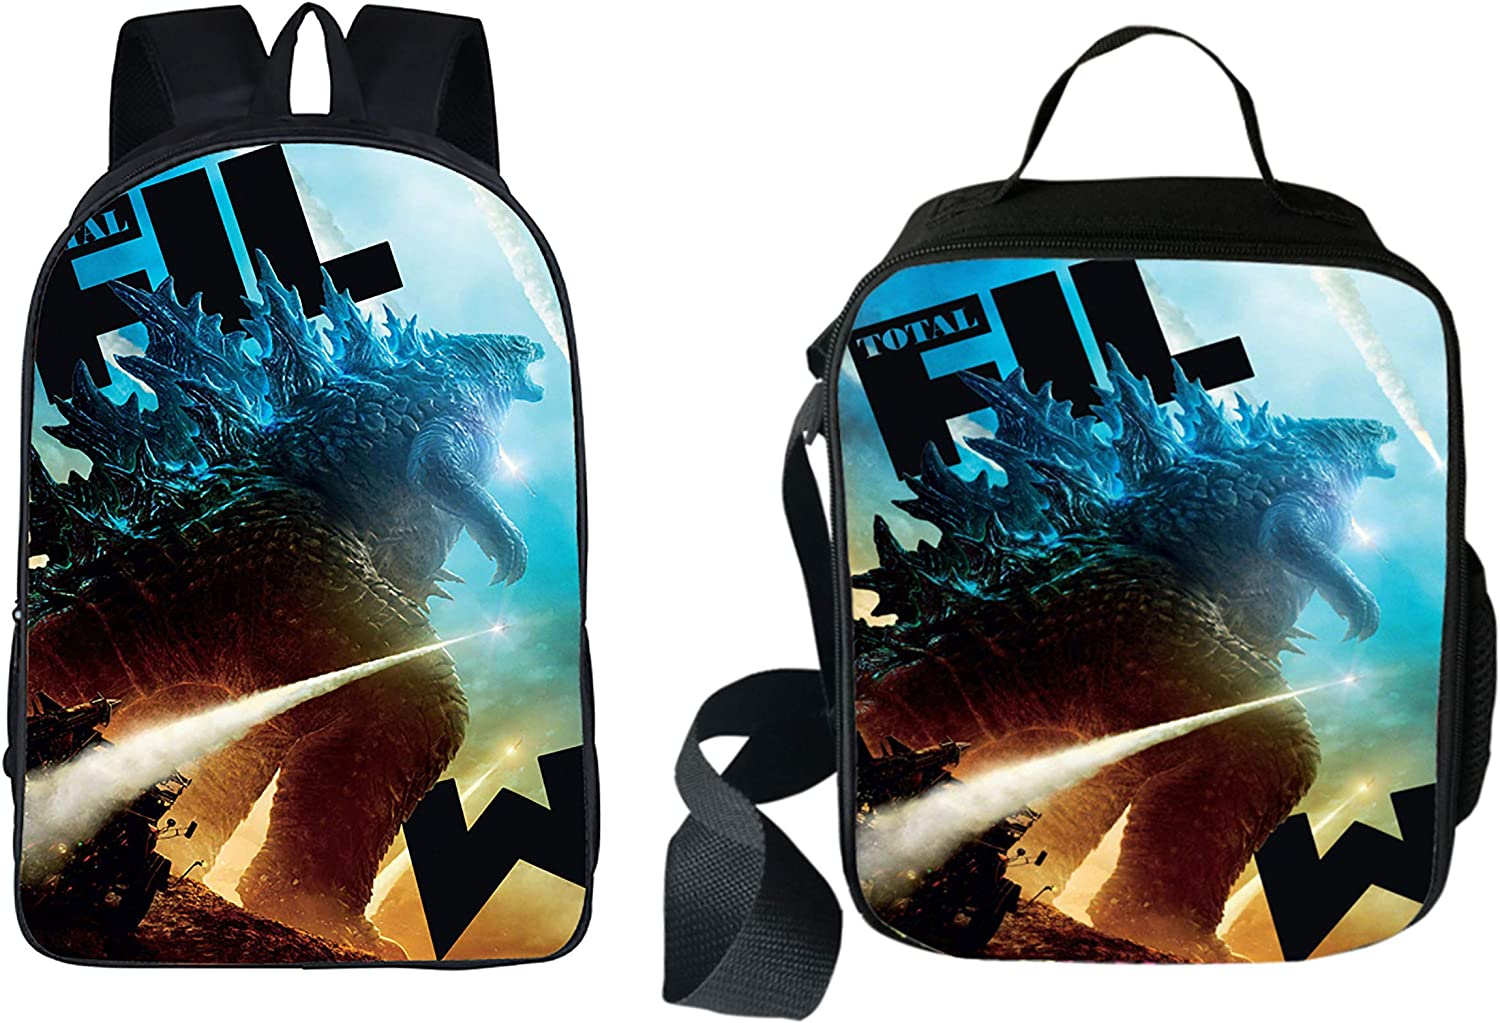 Godzilla Multi-Function Backpack College Bookbag Lunch Bag